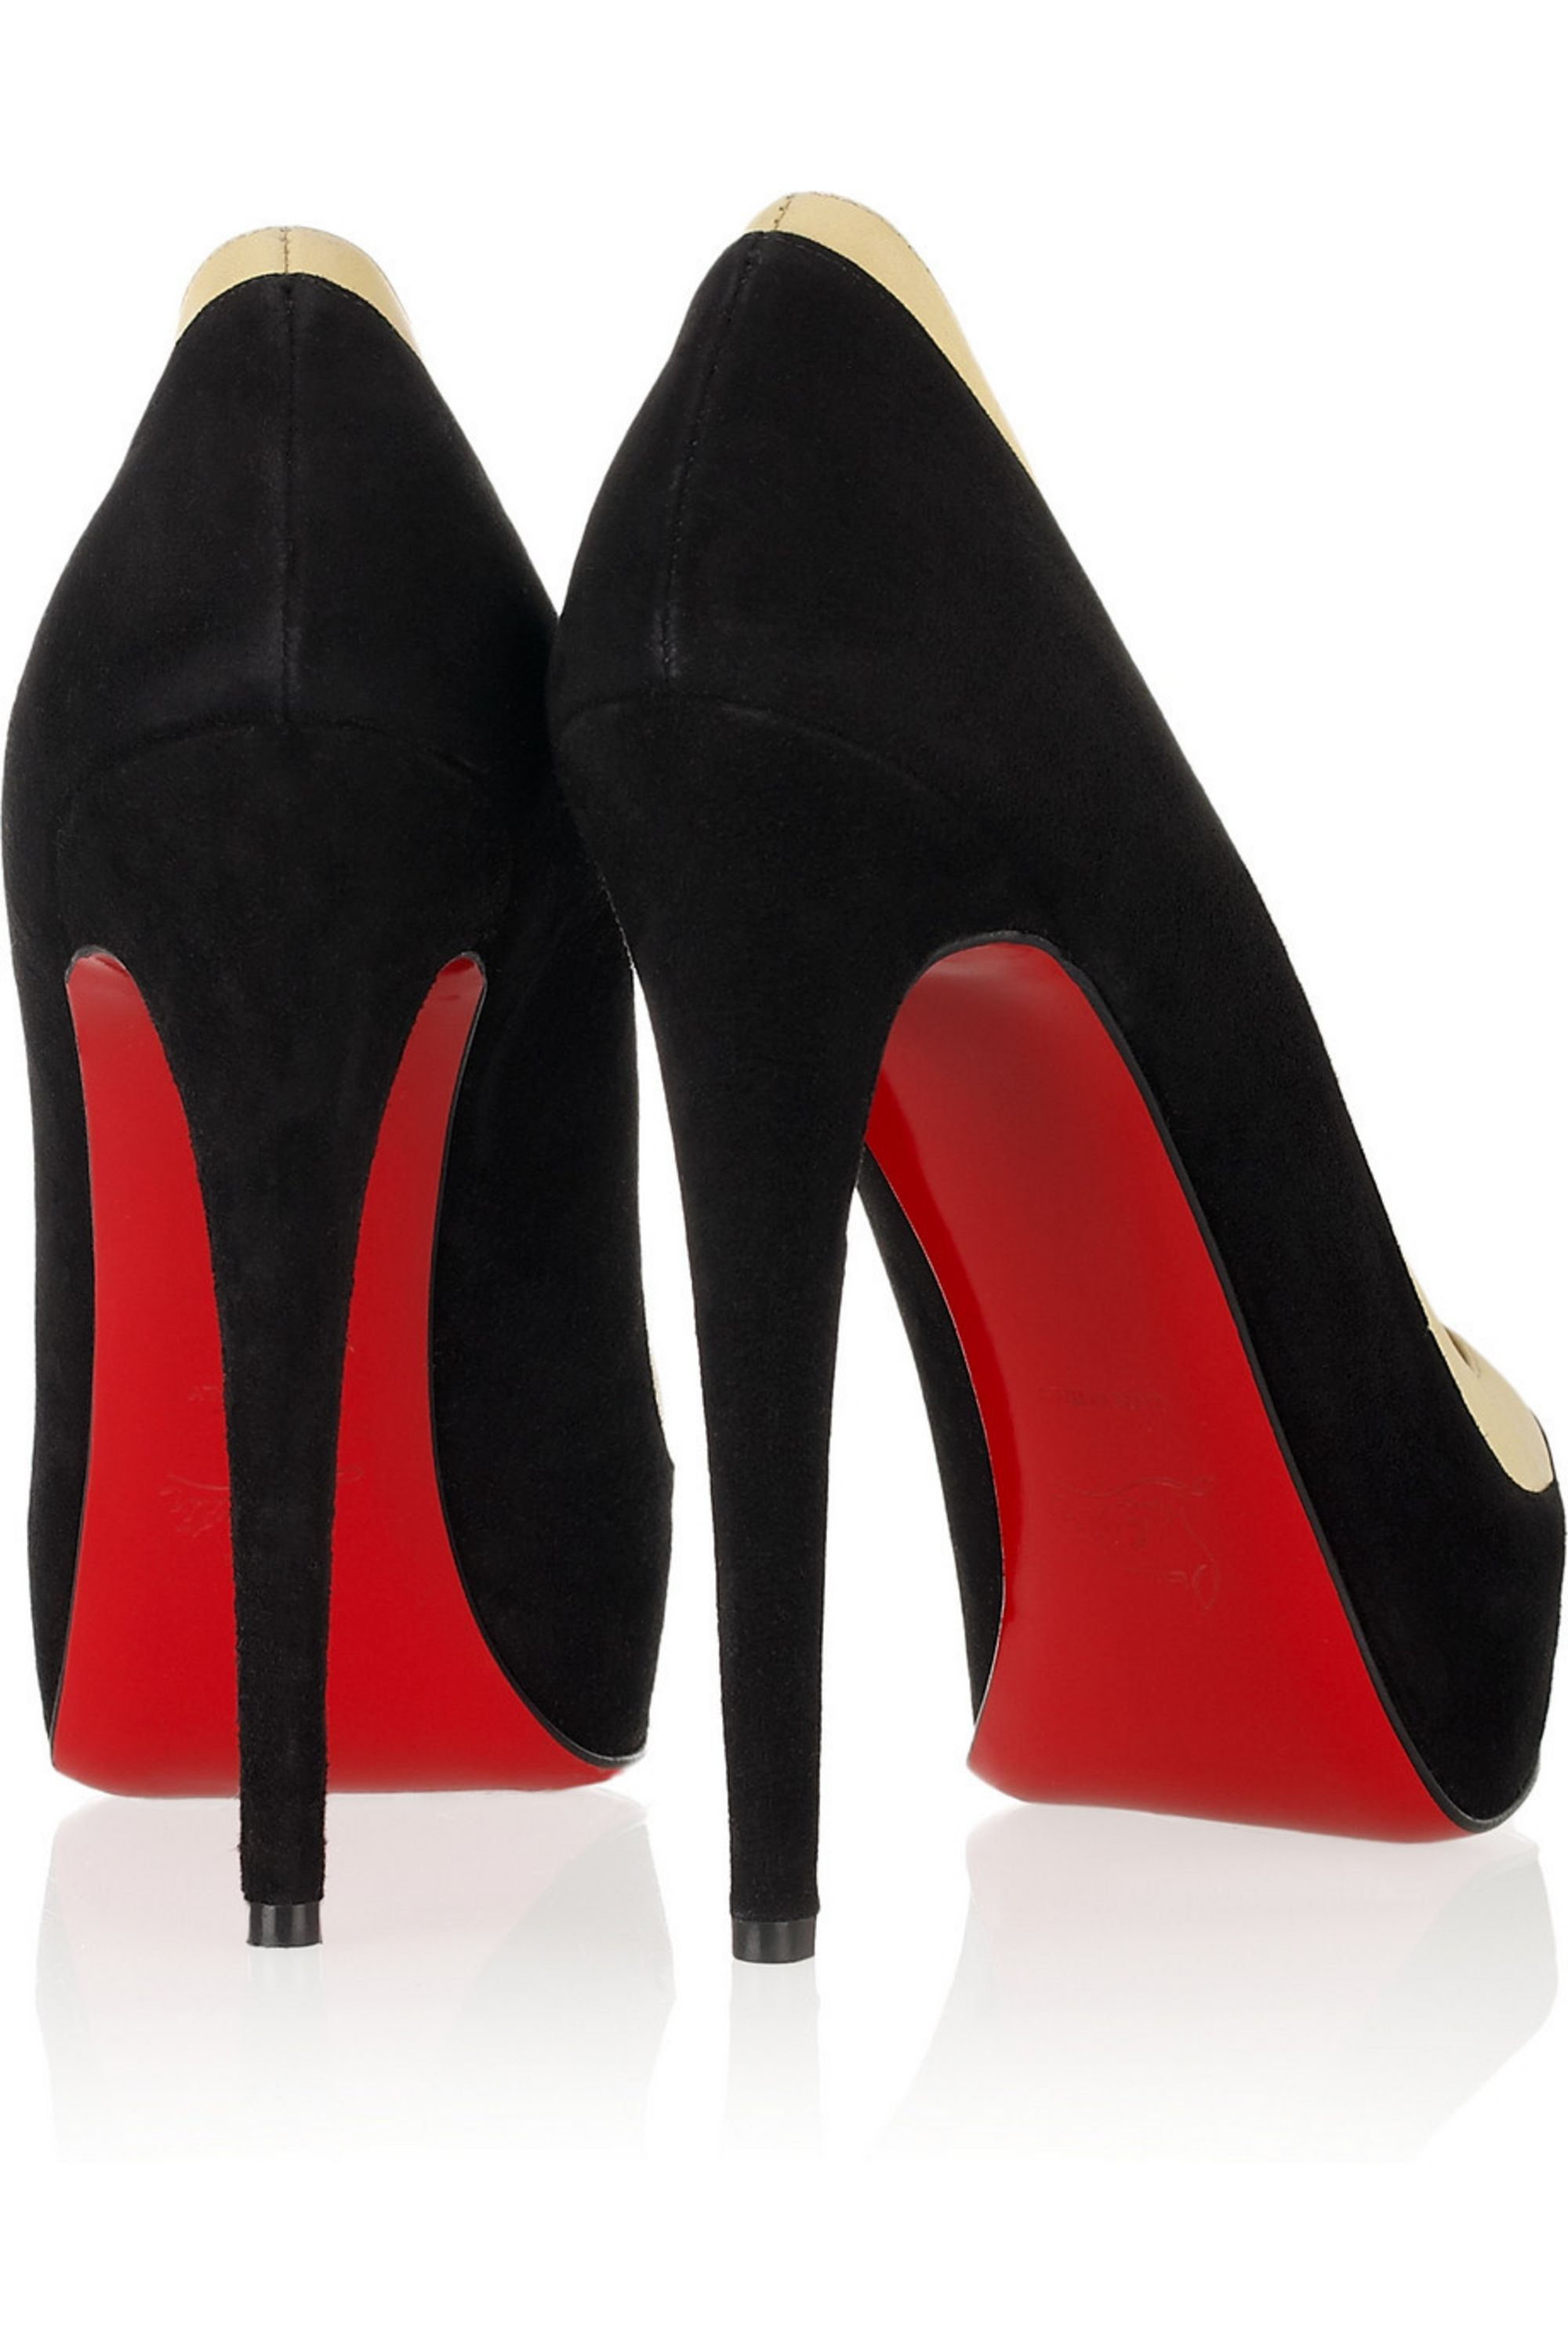 Christian Louboutin David Delfin suede and leather pumps